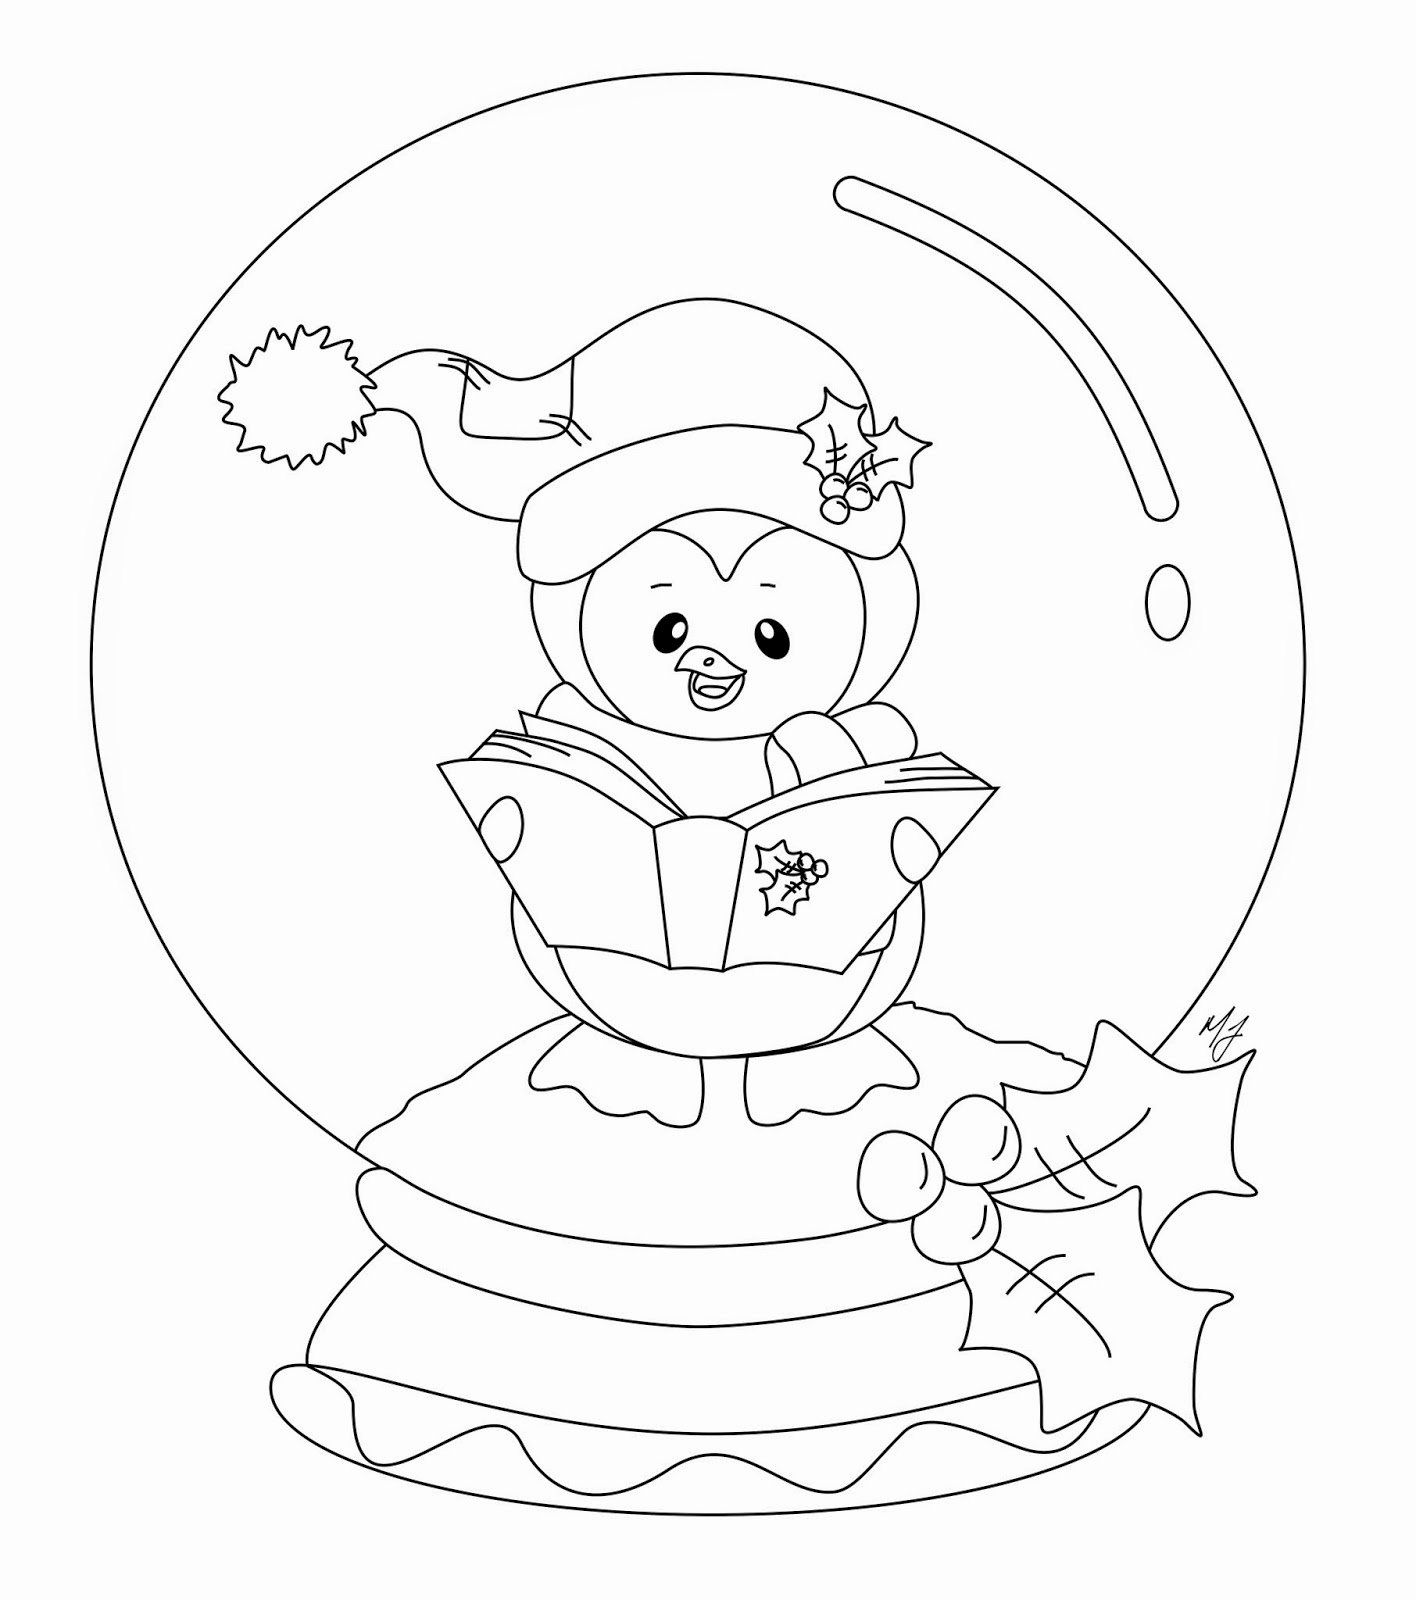 Snow Globe Coloring Page Unique Christmas Snow Globes Coloring Pages Sketch Coloring Page Christmas Coloring Sheets Coloring Pages Penguin Coloring Pages